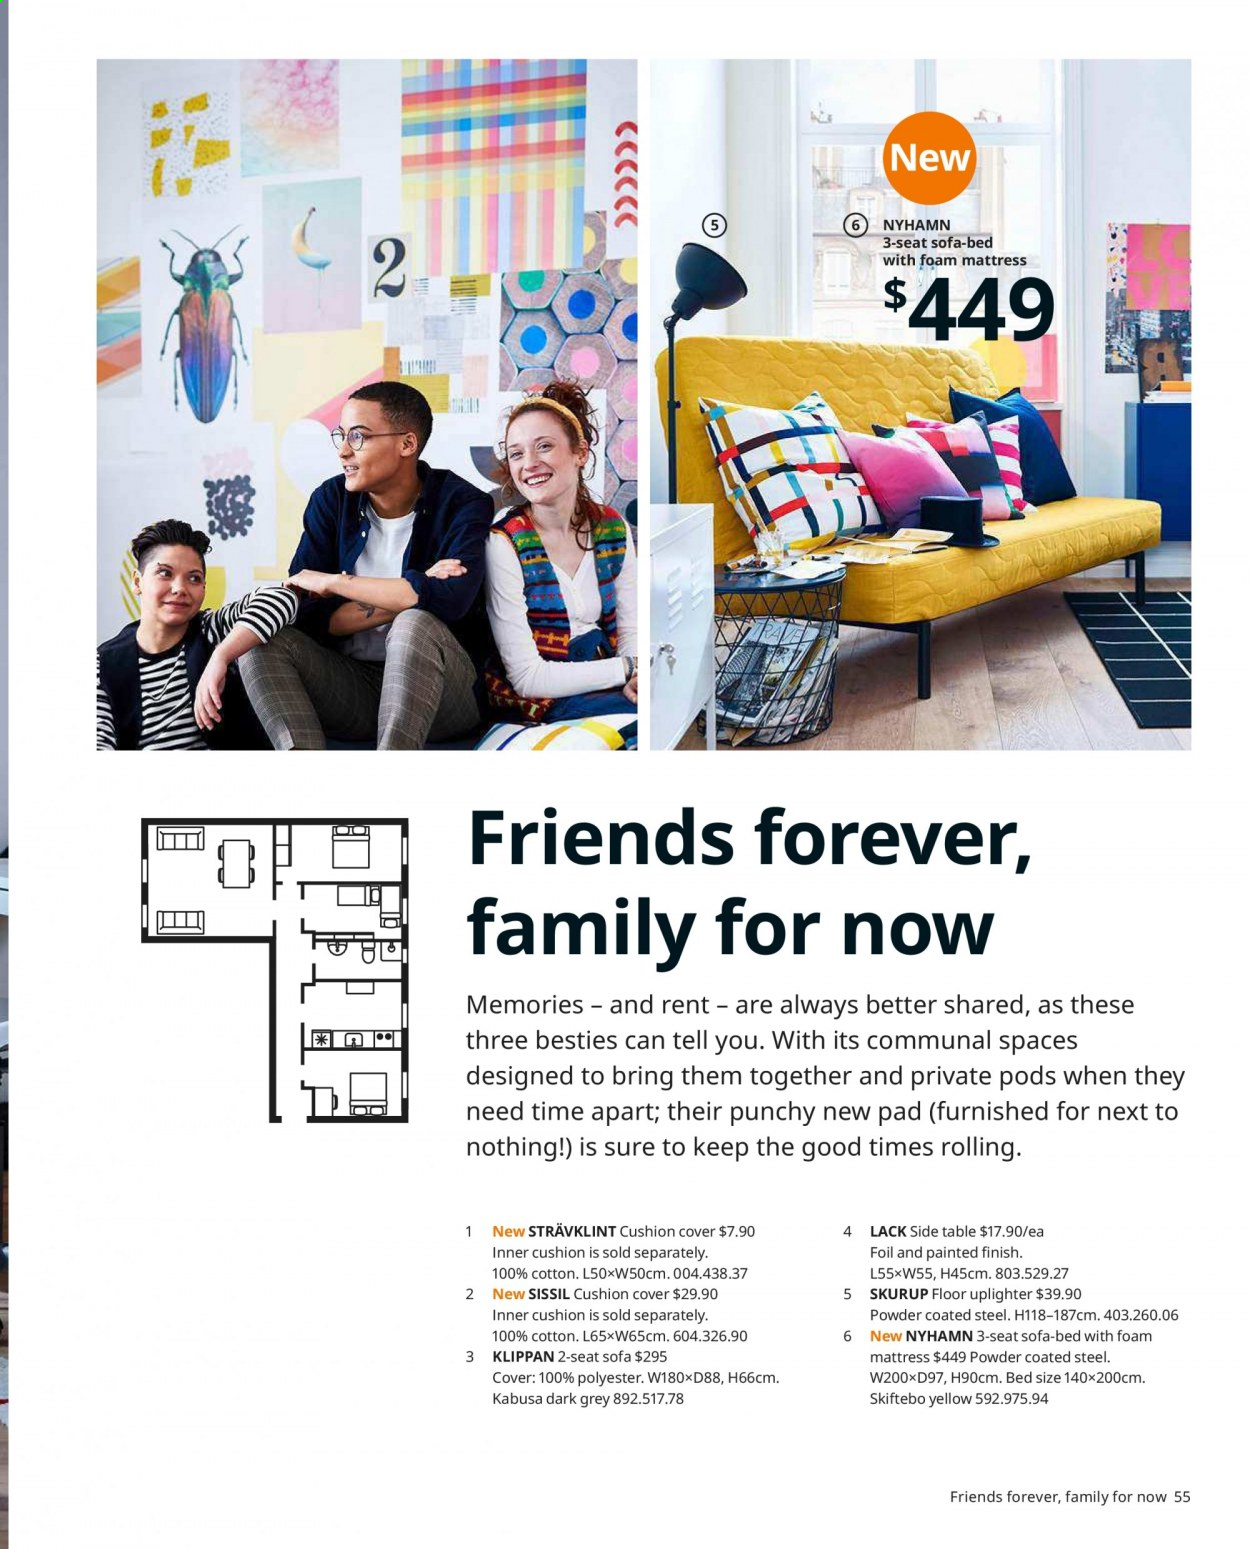 IKEA offer  - Sales products - always, bed, cushion, mattress, sofa, table, powder, pad. Page 55.